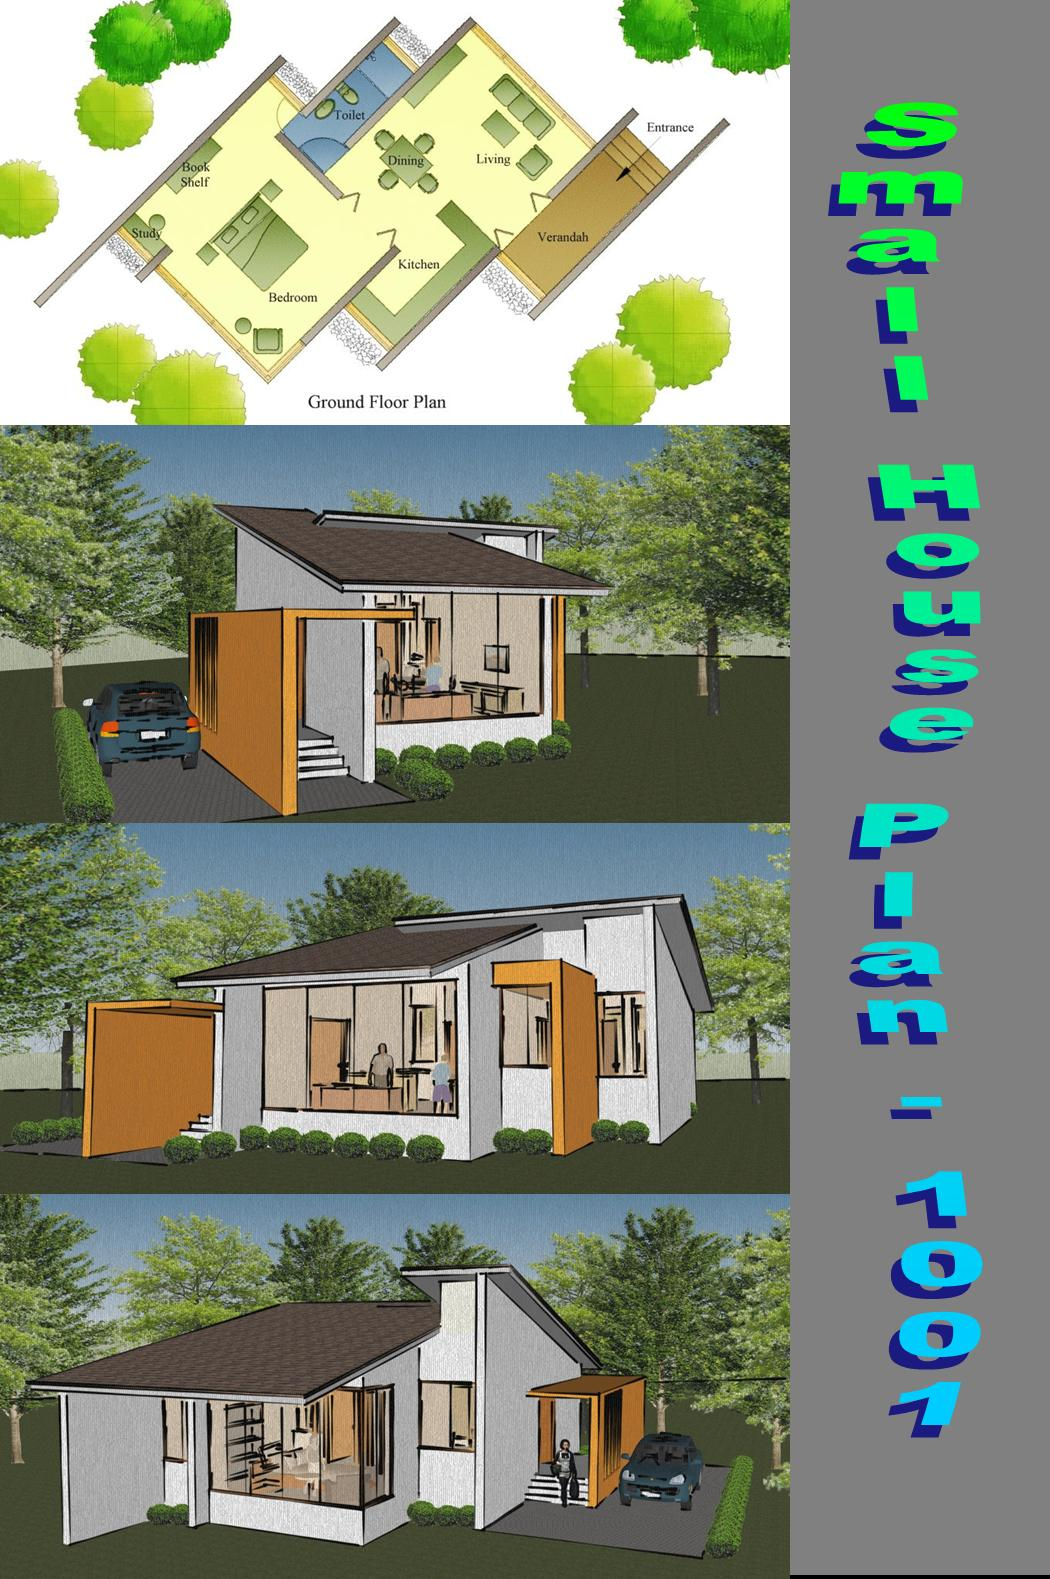 Home plans in india 5 best small home plans from - Small house planseuros ...